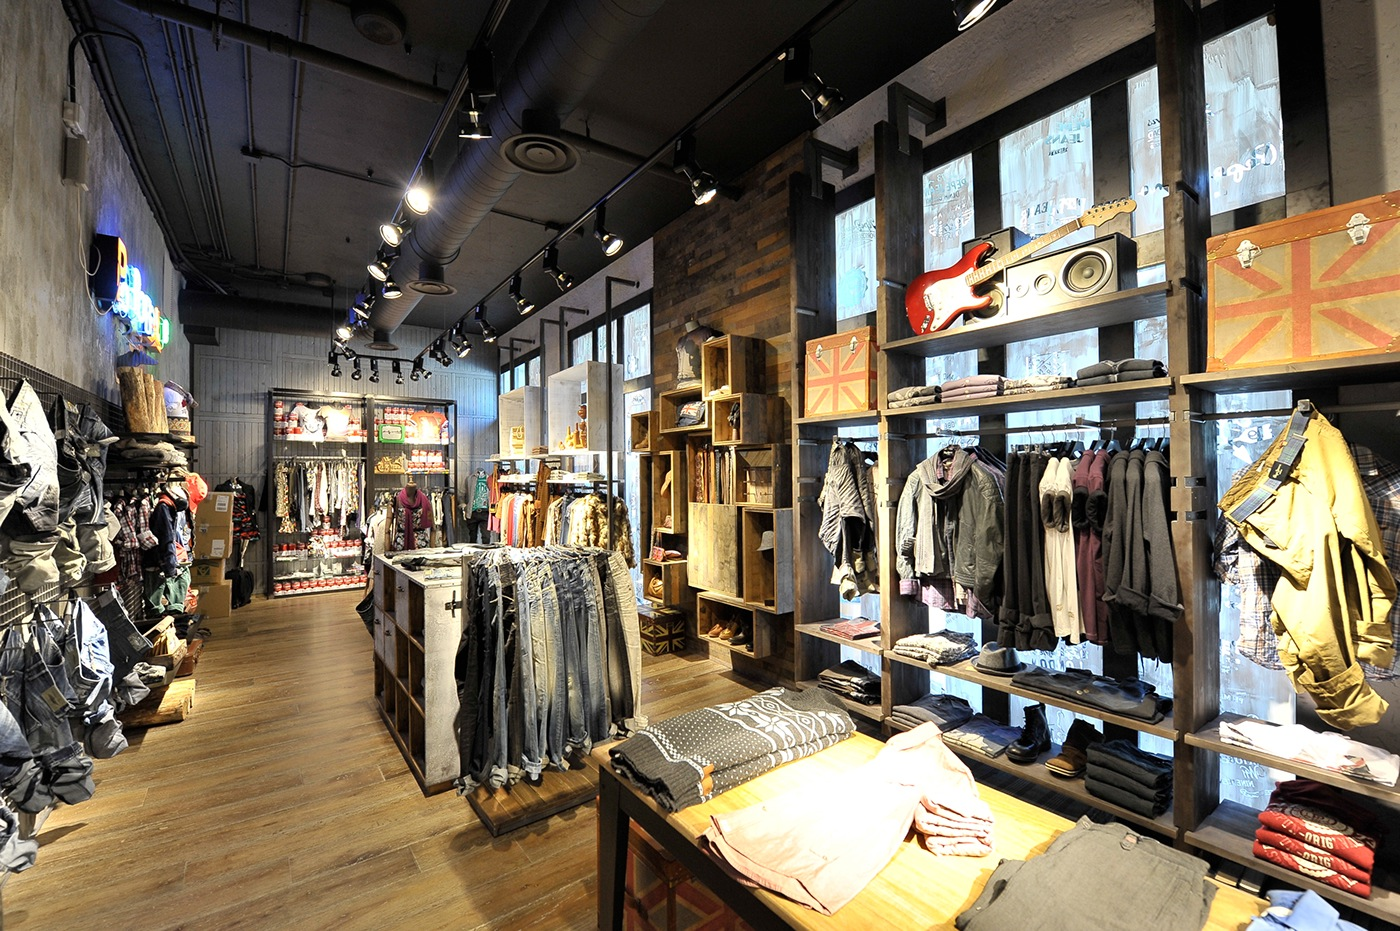 Mock store pepe jeans madrid 2011 on behance - Pepe jeans showroom ...